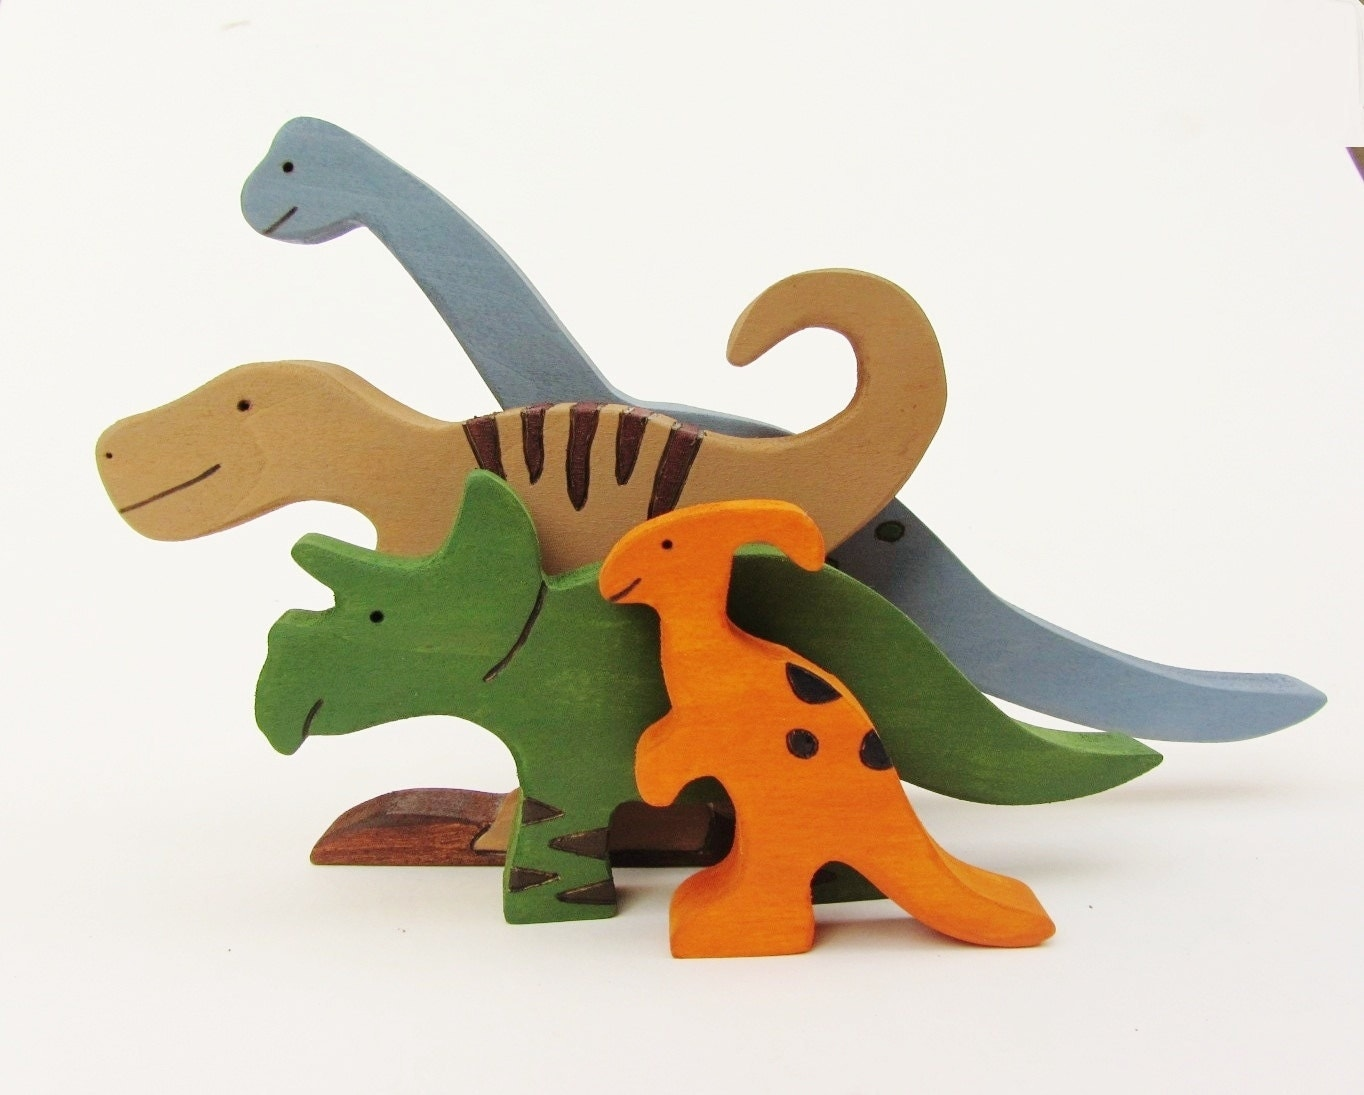 Wooden Dinosaur Toy Set Waldorf wood dinos by Imaginationkids